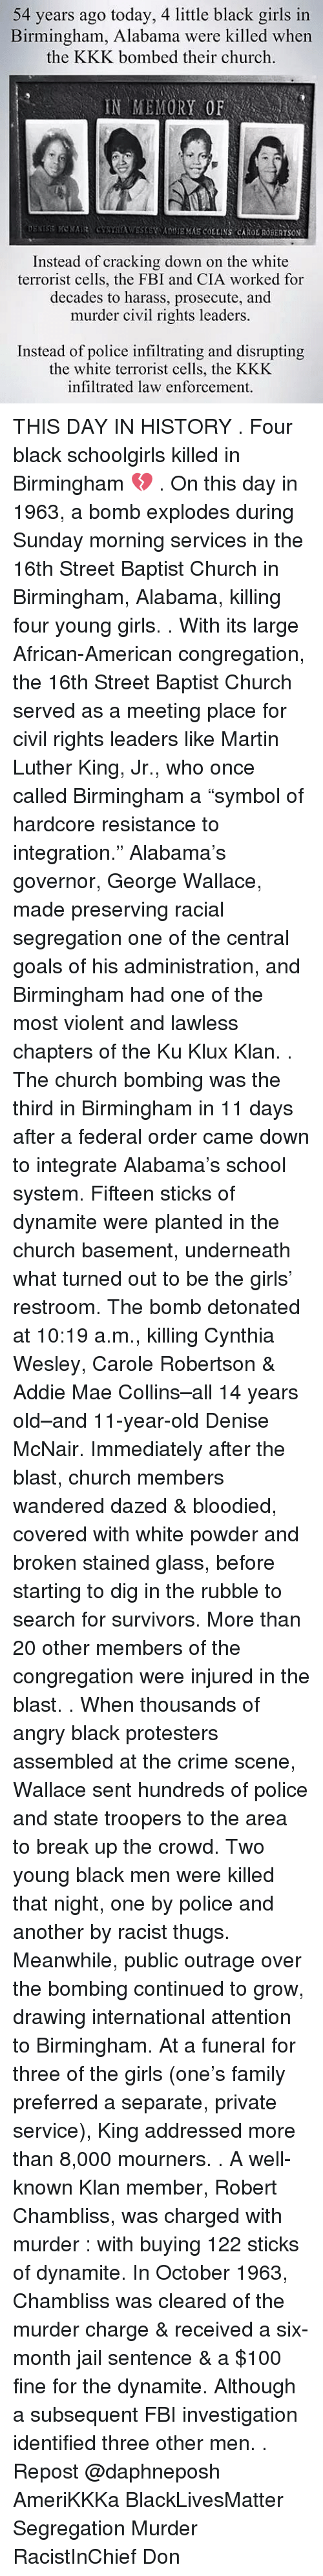 "Carole: 54 years ago today, 4 little black girls in  Birmingham, Alabama were killed whern  the KKK bombed their church  IN MEMORY OF  ADBS MKS COLLINS CAROL ROBERTSON  Instead of cracking down on the white  terrorist cells, the FBI and CIA worked for  decades to harass, prosecute, and  murder civil rights leaders.  Instead of police infiltrating and disrupting  the white terrorist cells, the KKK  infiltrated law enforcement THIS DAY IN HISTORY . Four black schoolgirls killed in Birmingham 💔 . On this day in 1963, a bomb explodes during Sunday morning services in the 16th Street Baptist Church in Birmingham, Alabama, killing four young girls. . With its large African-American congregation, the 16th Street Baptist Church served as a meeting place for civil rights leaders like Martin Luther King, Jr., who once called Birmingham a ""symbol of hardcore resistance to integration."" Alabama's governor, George Wallace, made preserving racial segregation one of the central goals of his administration, and Birmingham had one of the most violent and lawless chapters of the Ku Klux Klan. . The church bombing was the third in Birmingham in 11 days after a federal order came down to integrate Alabama's school system. Fifteen sticks of dynamite were planted in the church basement, underneath what turned out to be the girls' restroom. The bomb detonated at 10:19 a.m., killing Cynthia Wesley, Carole Robertson & Addie Mae Collins–all 14 years old–and 11-year-old Denise McNair. Immediately after the blast, church members wandered dazed & bloodied, covered with white powder and broken stained glass, before starting to dig in the rubble to search for survivors. More than 20 other members of the congregation were injured in the blast. . When thousands of angry black protesters assembled at the crime scene, Wallace sent hundreds of police and state troopers to the area to break up the crowd. Two young black men were killed that night, one by police and another by racist thugs. Meanwhile, public outrage over the bombing continued to grow, drawing international attention to Birmingham. At a funeral for three of the girls (one's family preferred a separate, private service), King addressed more than 8,000 mourners. . A well-known Klan member, Robert Chambliss, was charged with murder : with buying 122 sticks of dynamite. In October 1963, Chambliss was cleared of the murder charge & received a six-month jail sentence & a $100 fine for the dynamite. Although a subsequent FBI investigation identified three other men. . Repost @daphneposh AmeriKKKa BlackLivesMatter Segregation Murder RacistInChief Don"